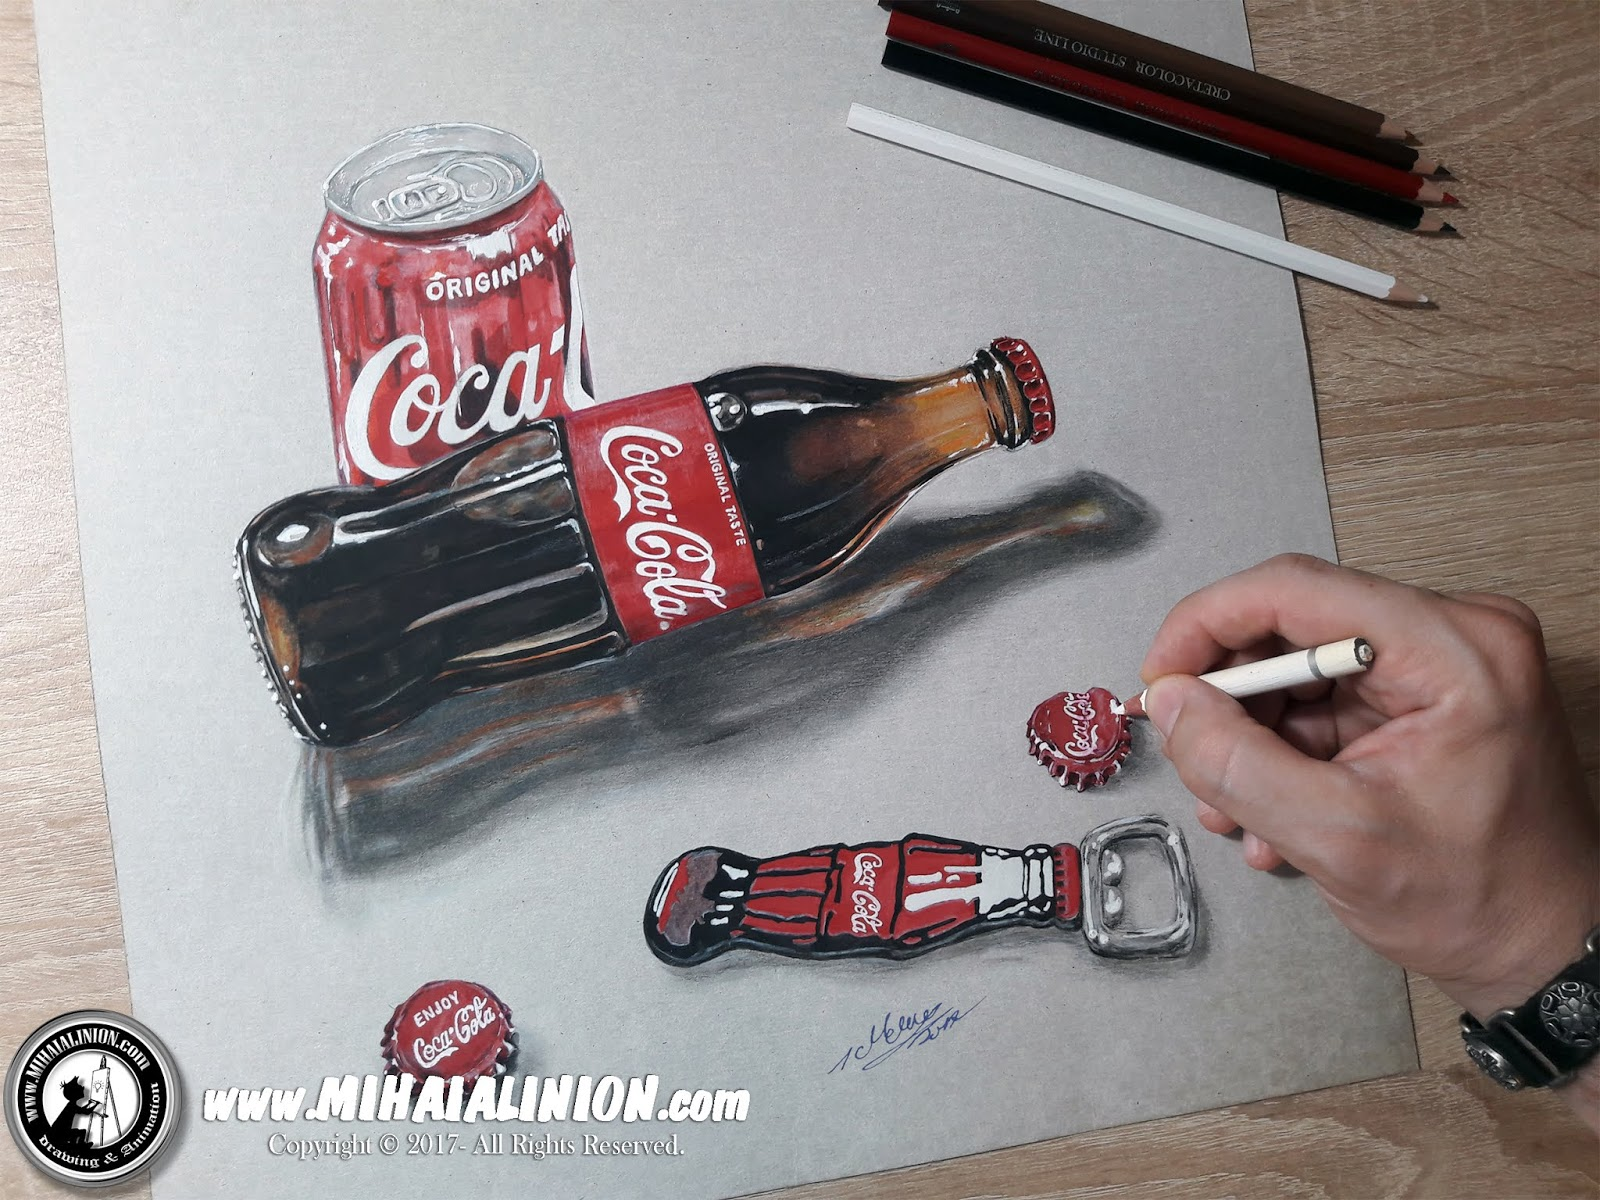 Drawing Coca Cola, Drawing Cola, Drawing Cola Bottle, Coca Cola Lime, object illustration, coca cola can, coca cola secret recipe, painting, How to draw coca cola, How to draw a coca cola can, How to draw a coca cola bottle, coca cola pencil drawing, Always Coca Cola, Beverages, Bottle, Coca Cola, Cola Illustration, John Pemberton, Product Design, Realistic 3D Art, Realistic Drawing, Taste The Feeling, 2017 Realistic 3D Art, illustrations by mihai alin ion, MAI Comics, Mihai Alin Ion, art by mihai alin ion, how to draw, artselfie, drawing ideas, free drawing lessons, drawing tutorial, art, dessin, disegno, dibujo, drawing for kids, drawing, illustration, painting, design, realistic 3d art, coloured pencils, www.mihaialinion.com, 2018, pencil drawing, tempera, acrilics paint, marker, gouache painting, mixed media, comics, comic book, caricature, portrait, cum sa desenezi, caricaturi mihai alin ion, caricaturi si portrete  la comanda, eveniment caricaturi, caricaturi la nunta, caricaturi la botez, caricaturi la majorat, desene pe pereti, desene pentru copii, ilustratie carte, benzi desenate, caricaturi, portrete, comanda caricaturi